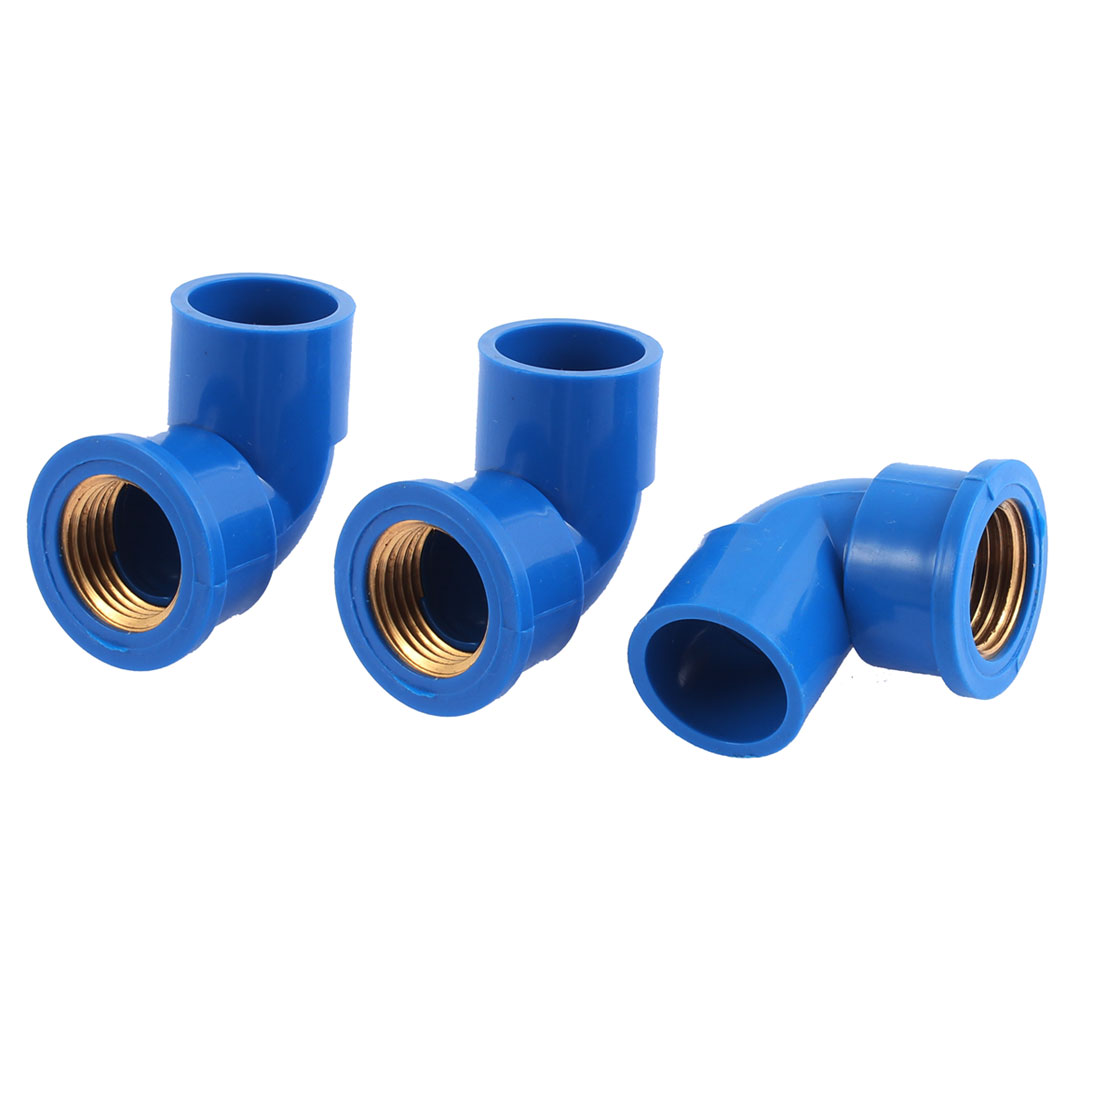 Right Angle Elbow Pipe Connectors 1/2BSP Female Thread 3PCS